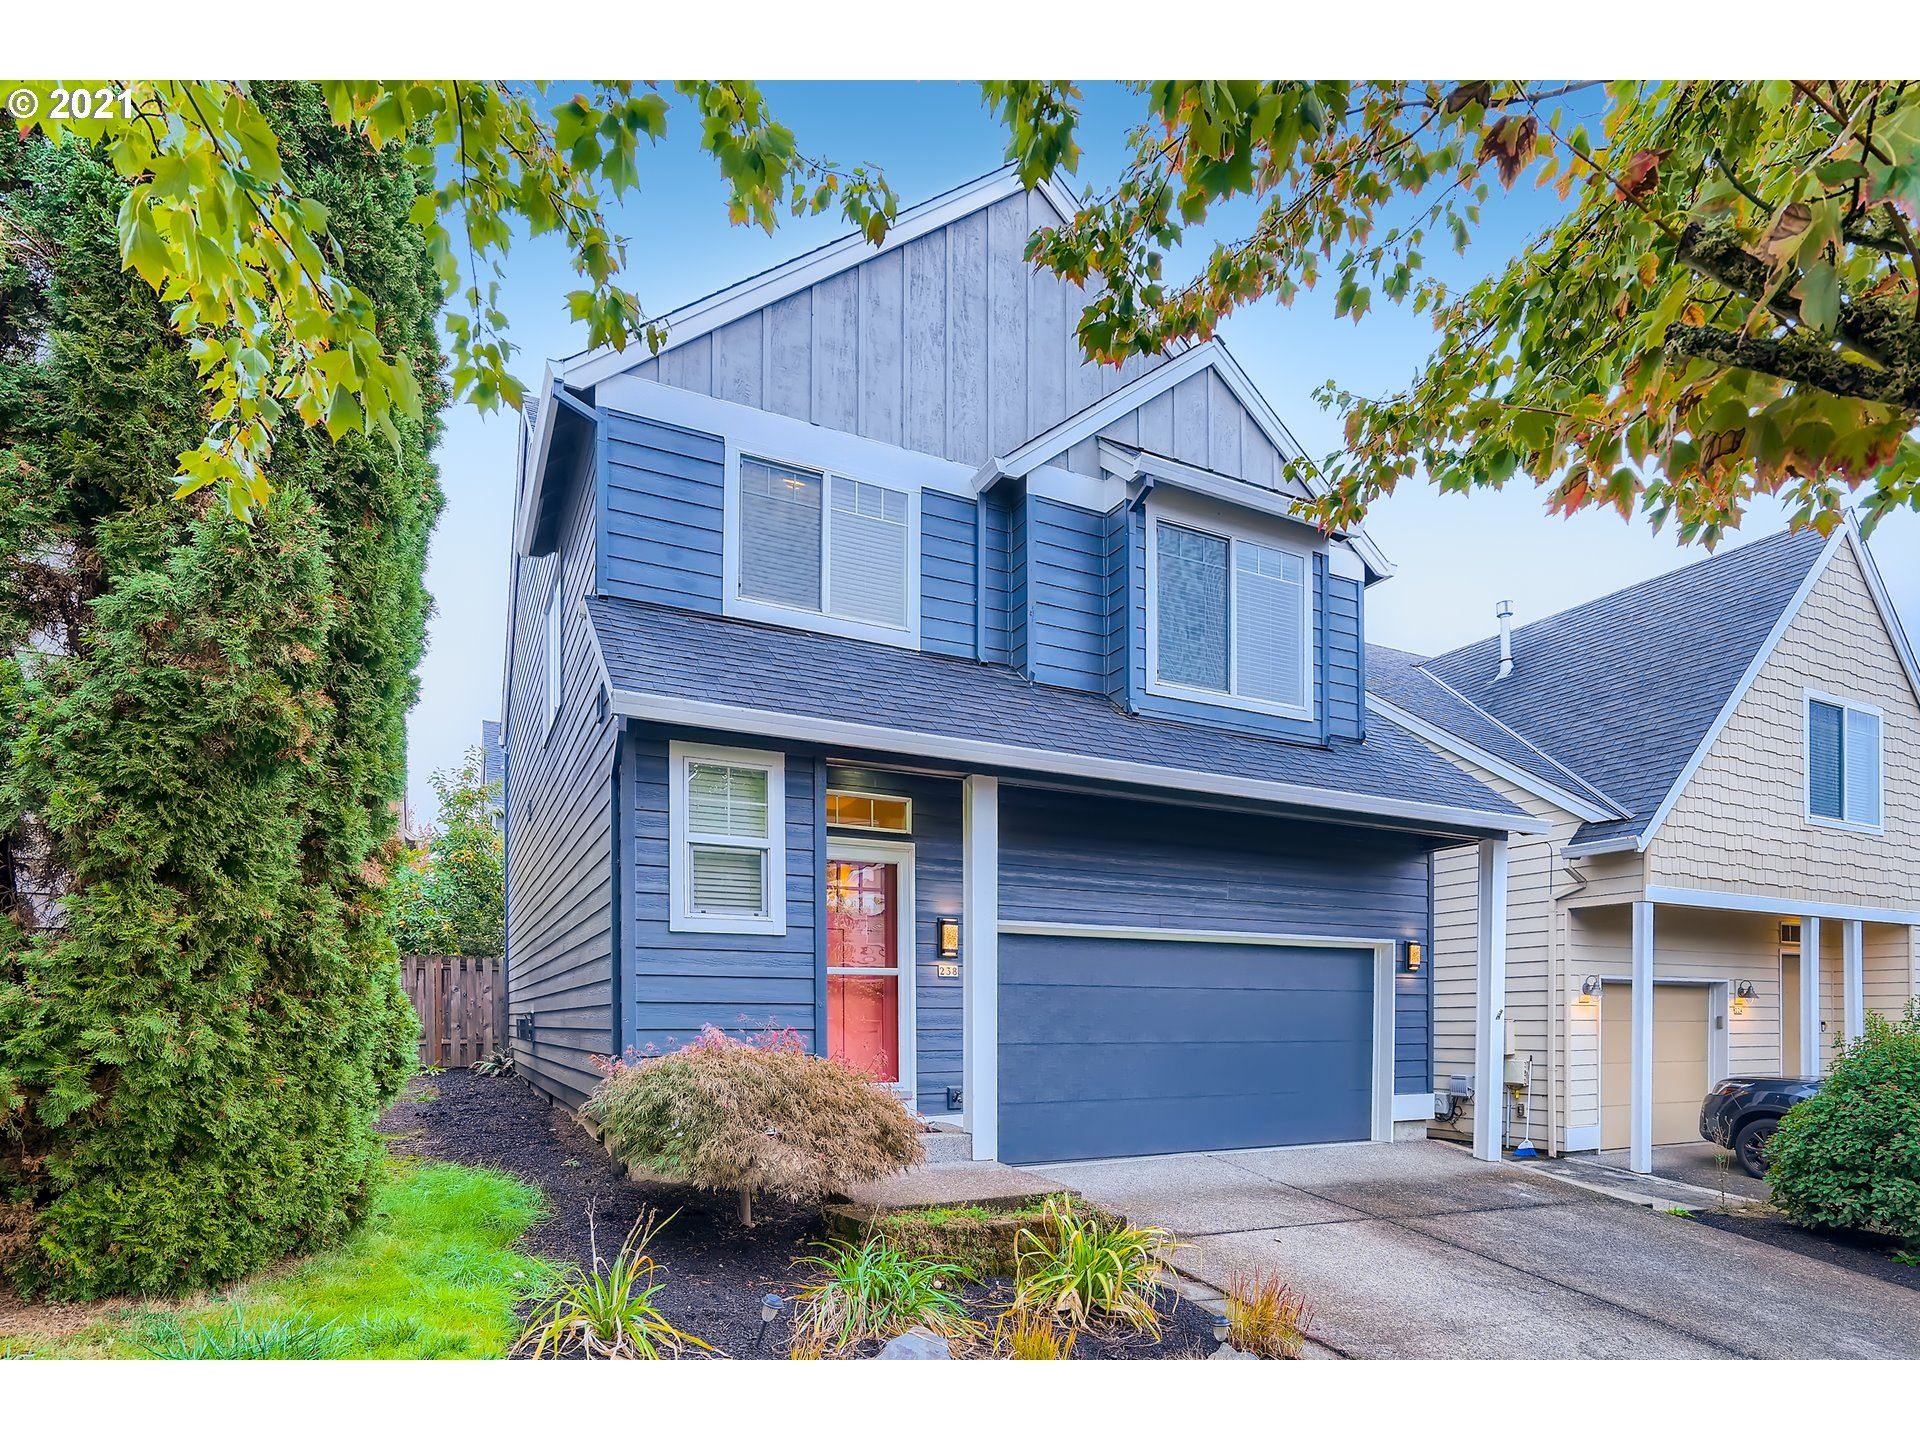 238 NW 209TH AVE, Beaverton, OR 97006 - MLS#: 21533656